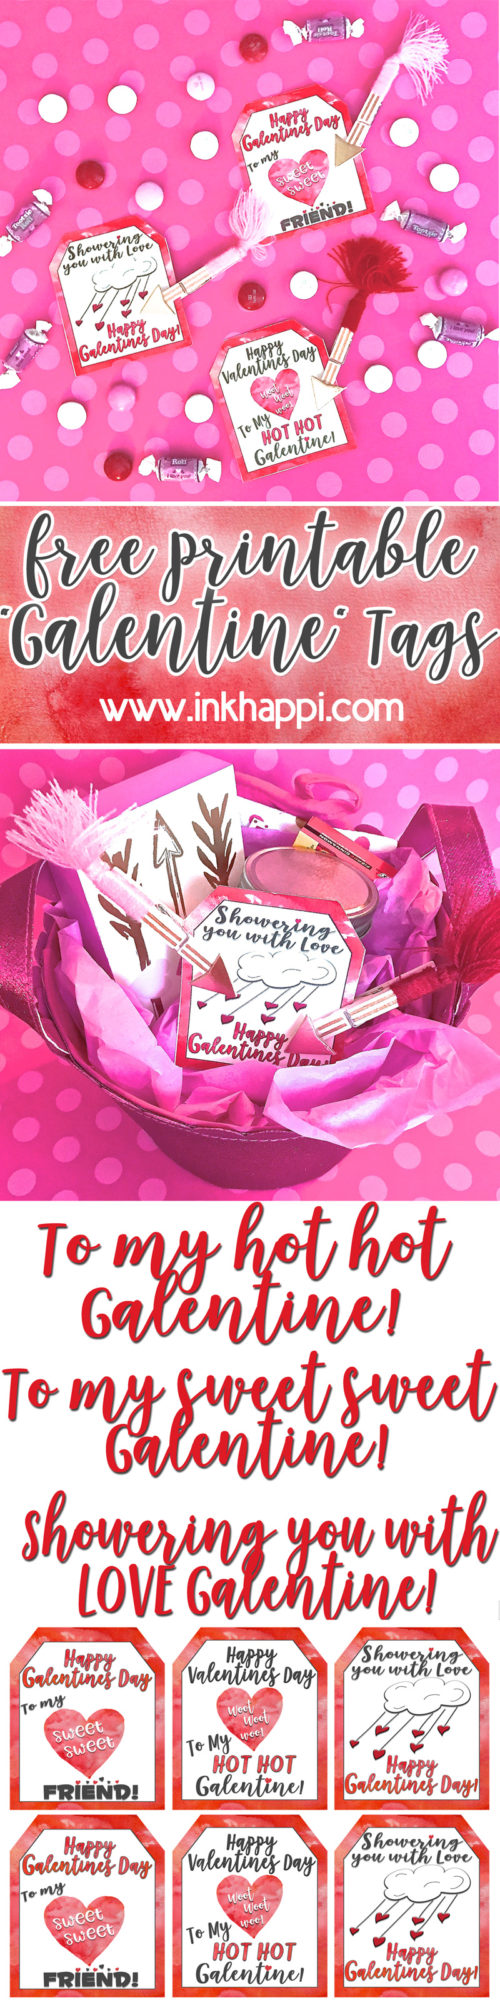 What a cute way to show the gals in your life some love with these Free Printable Galentine Gift Tags!